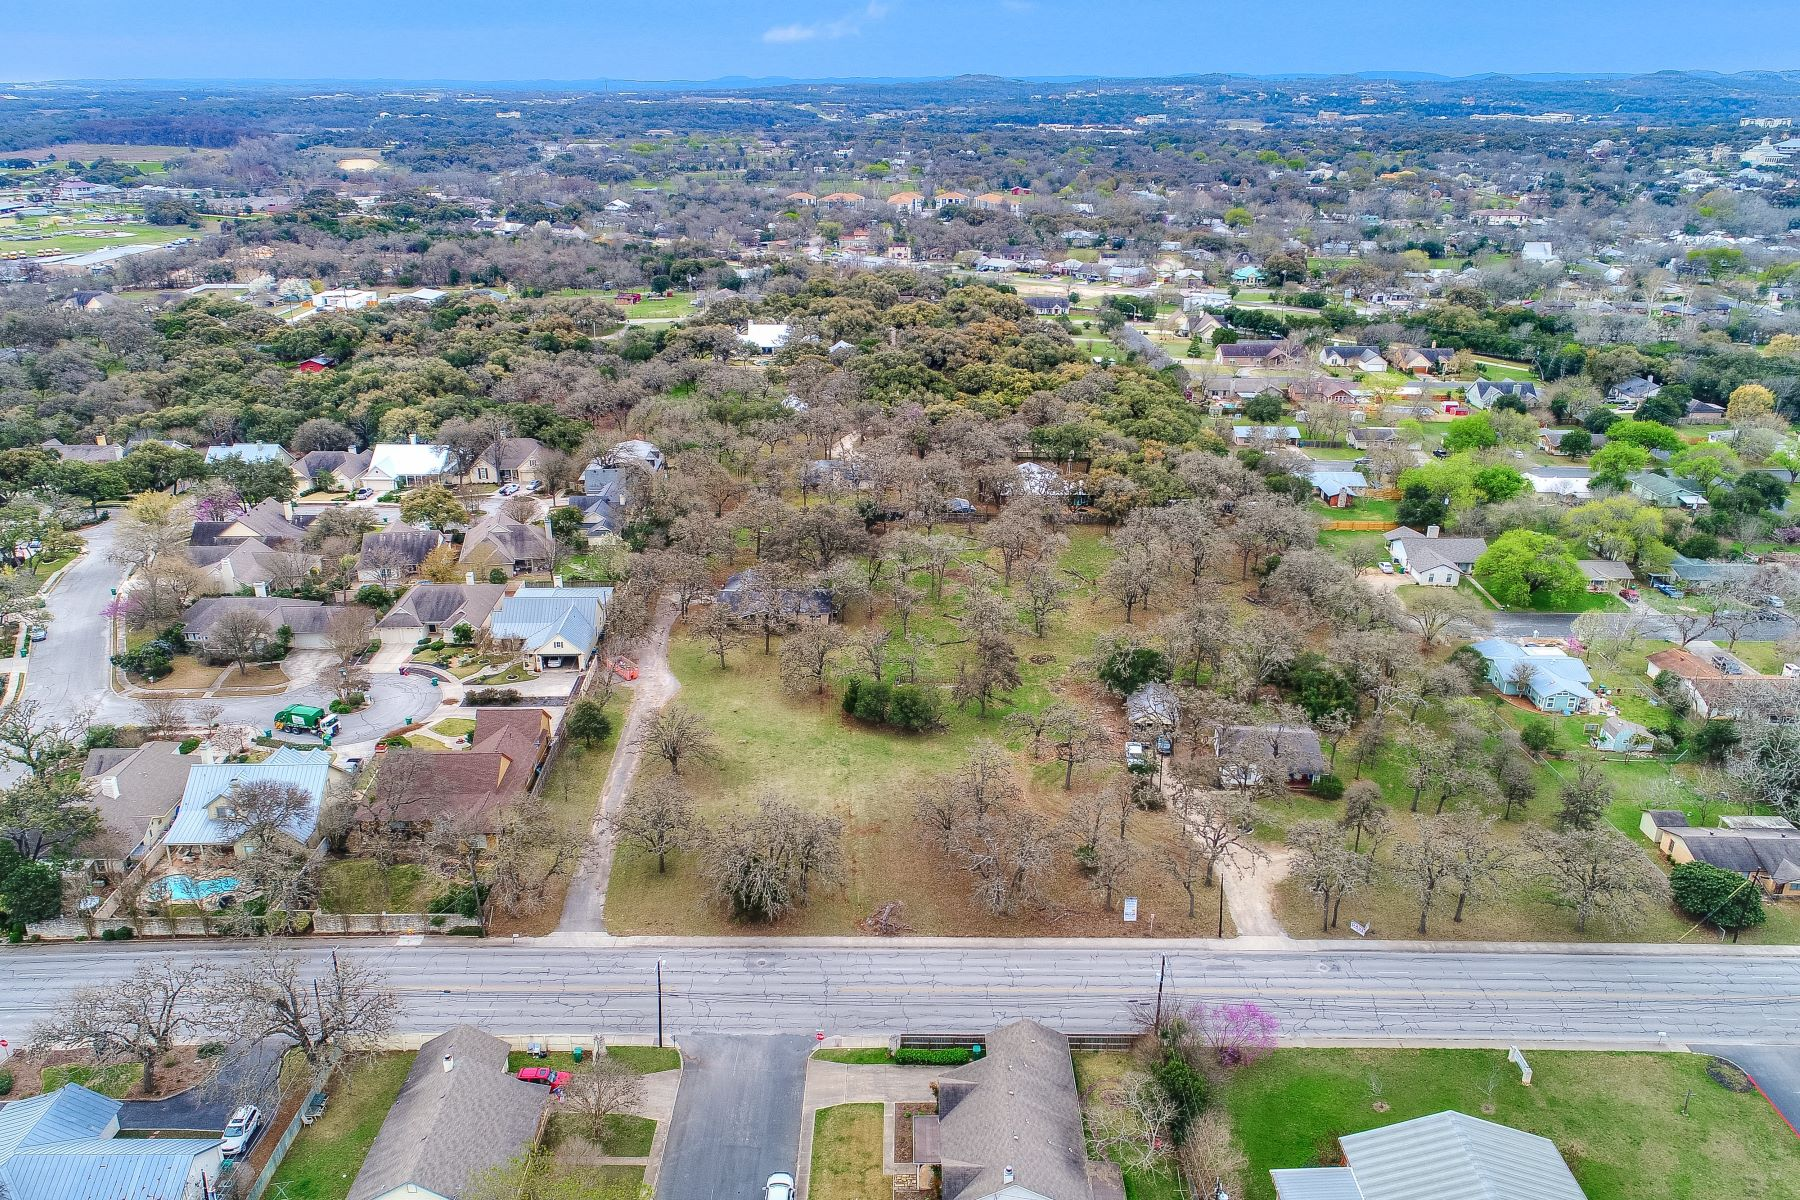 Land for Sale at Property in Historic Downtown Boerne 1037 East Blanco Road, Boerne, Texas, 78006 United States